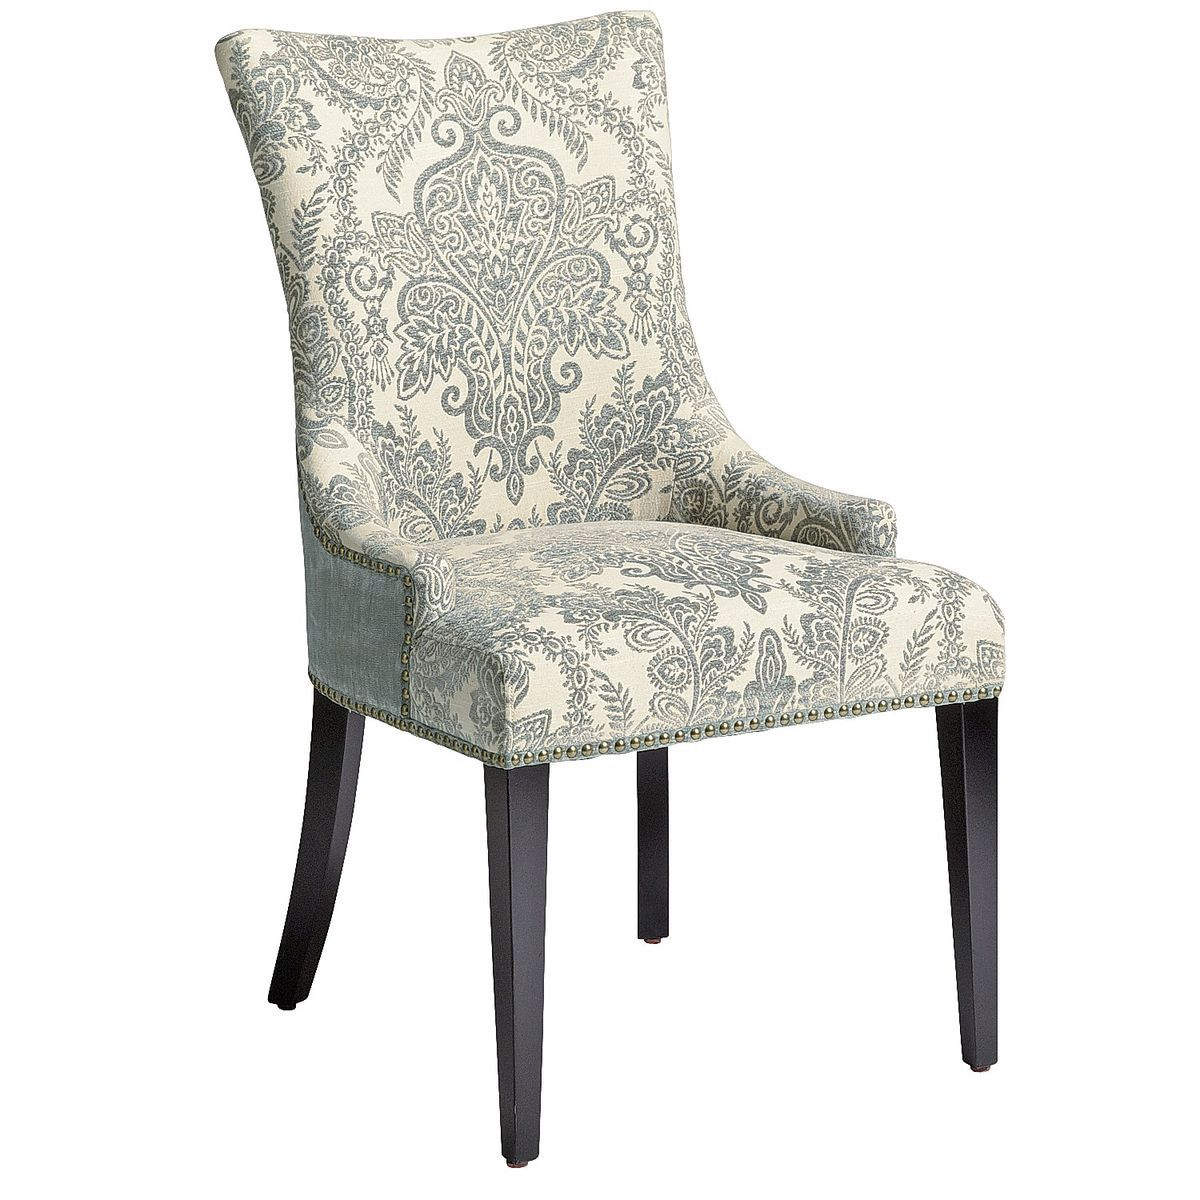 Adelle Dining Chair Smoke Blue Pier 1 Imports